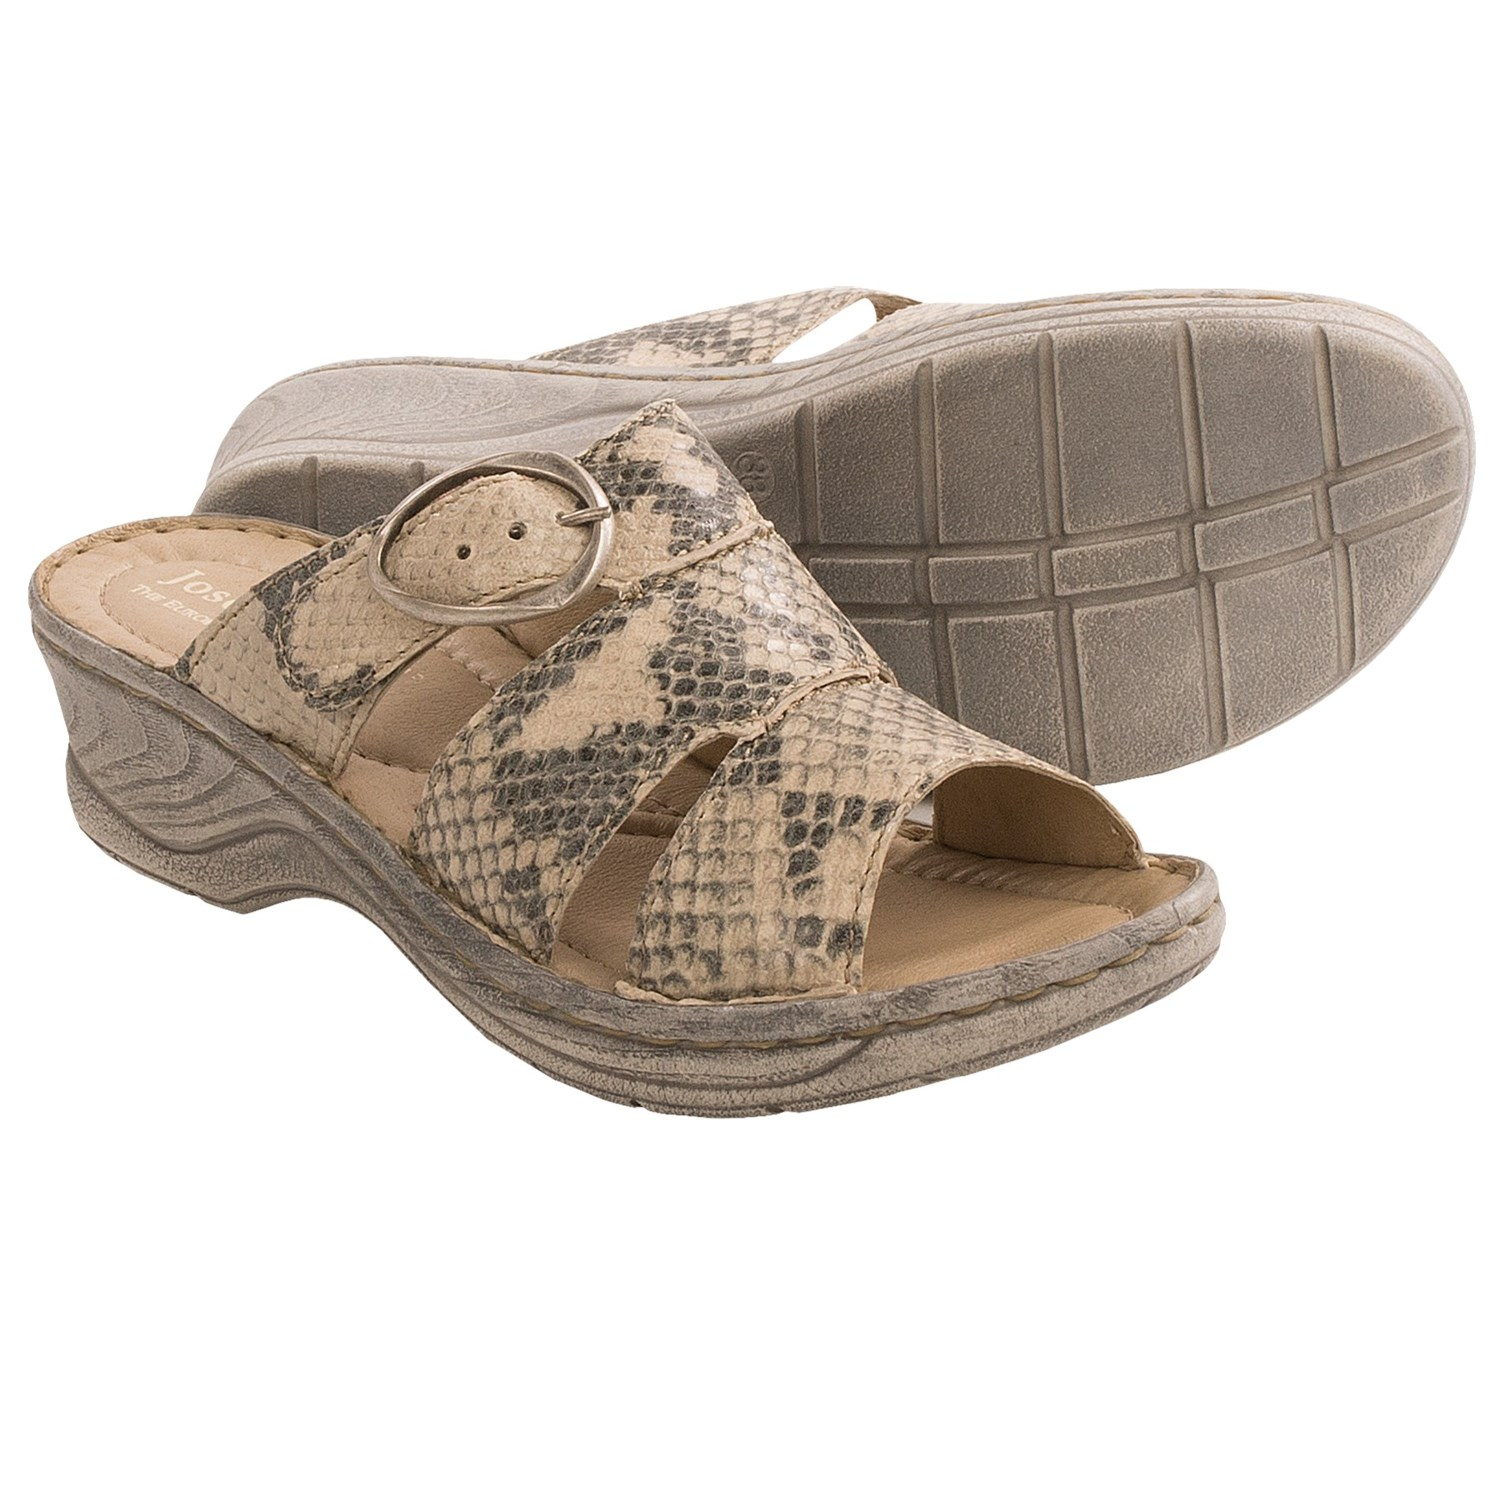 Women's Sport Sandals up to 70% off at Sierra Trading Post